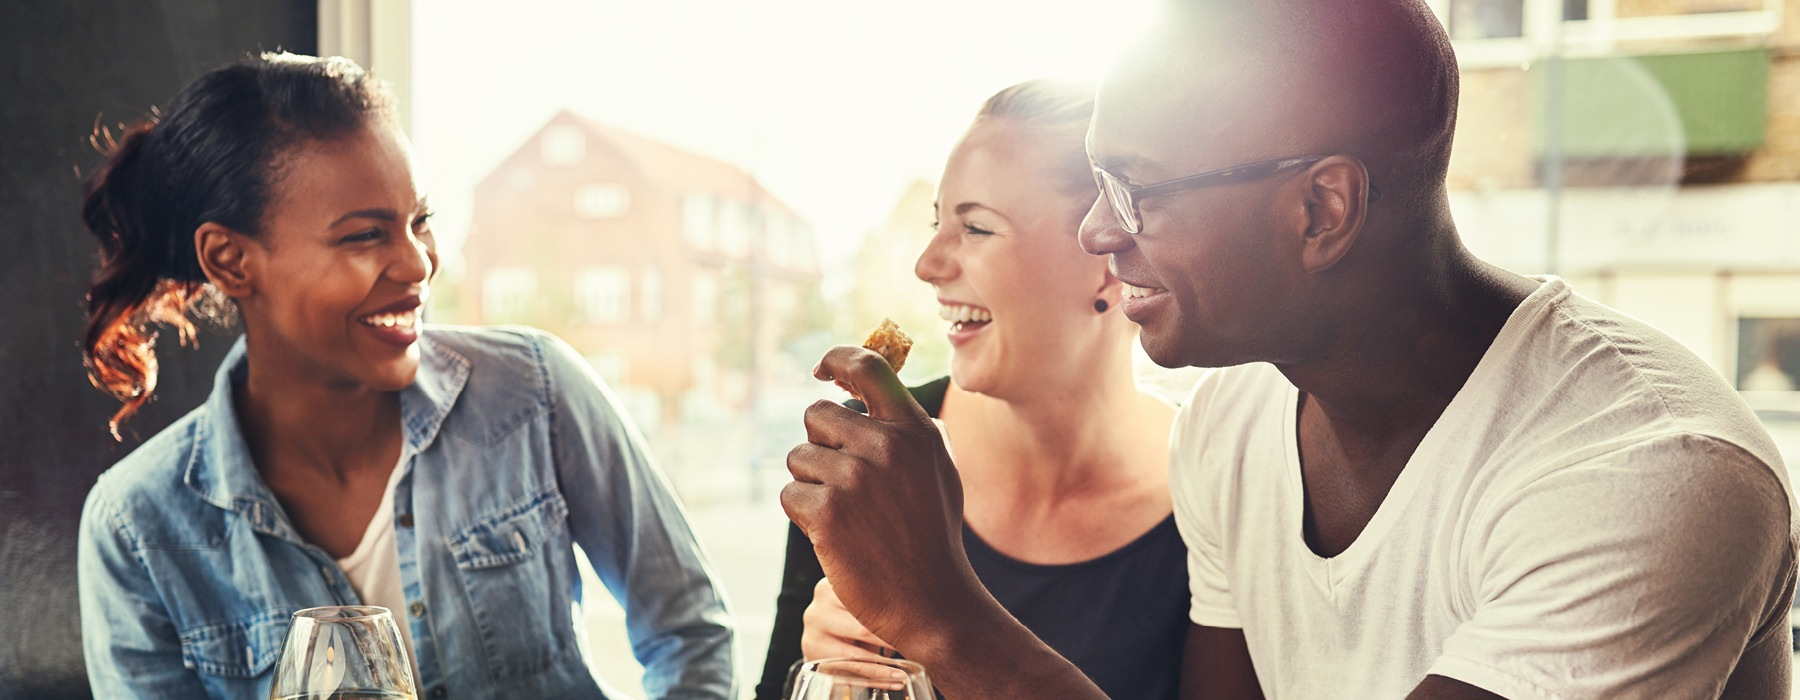 Man and two woman laughing while having a meal.